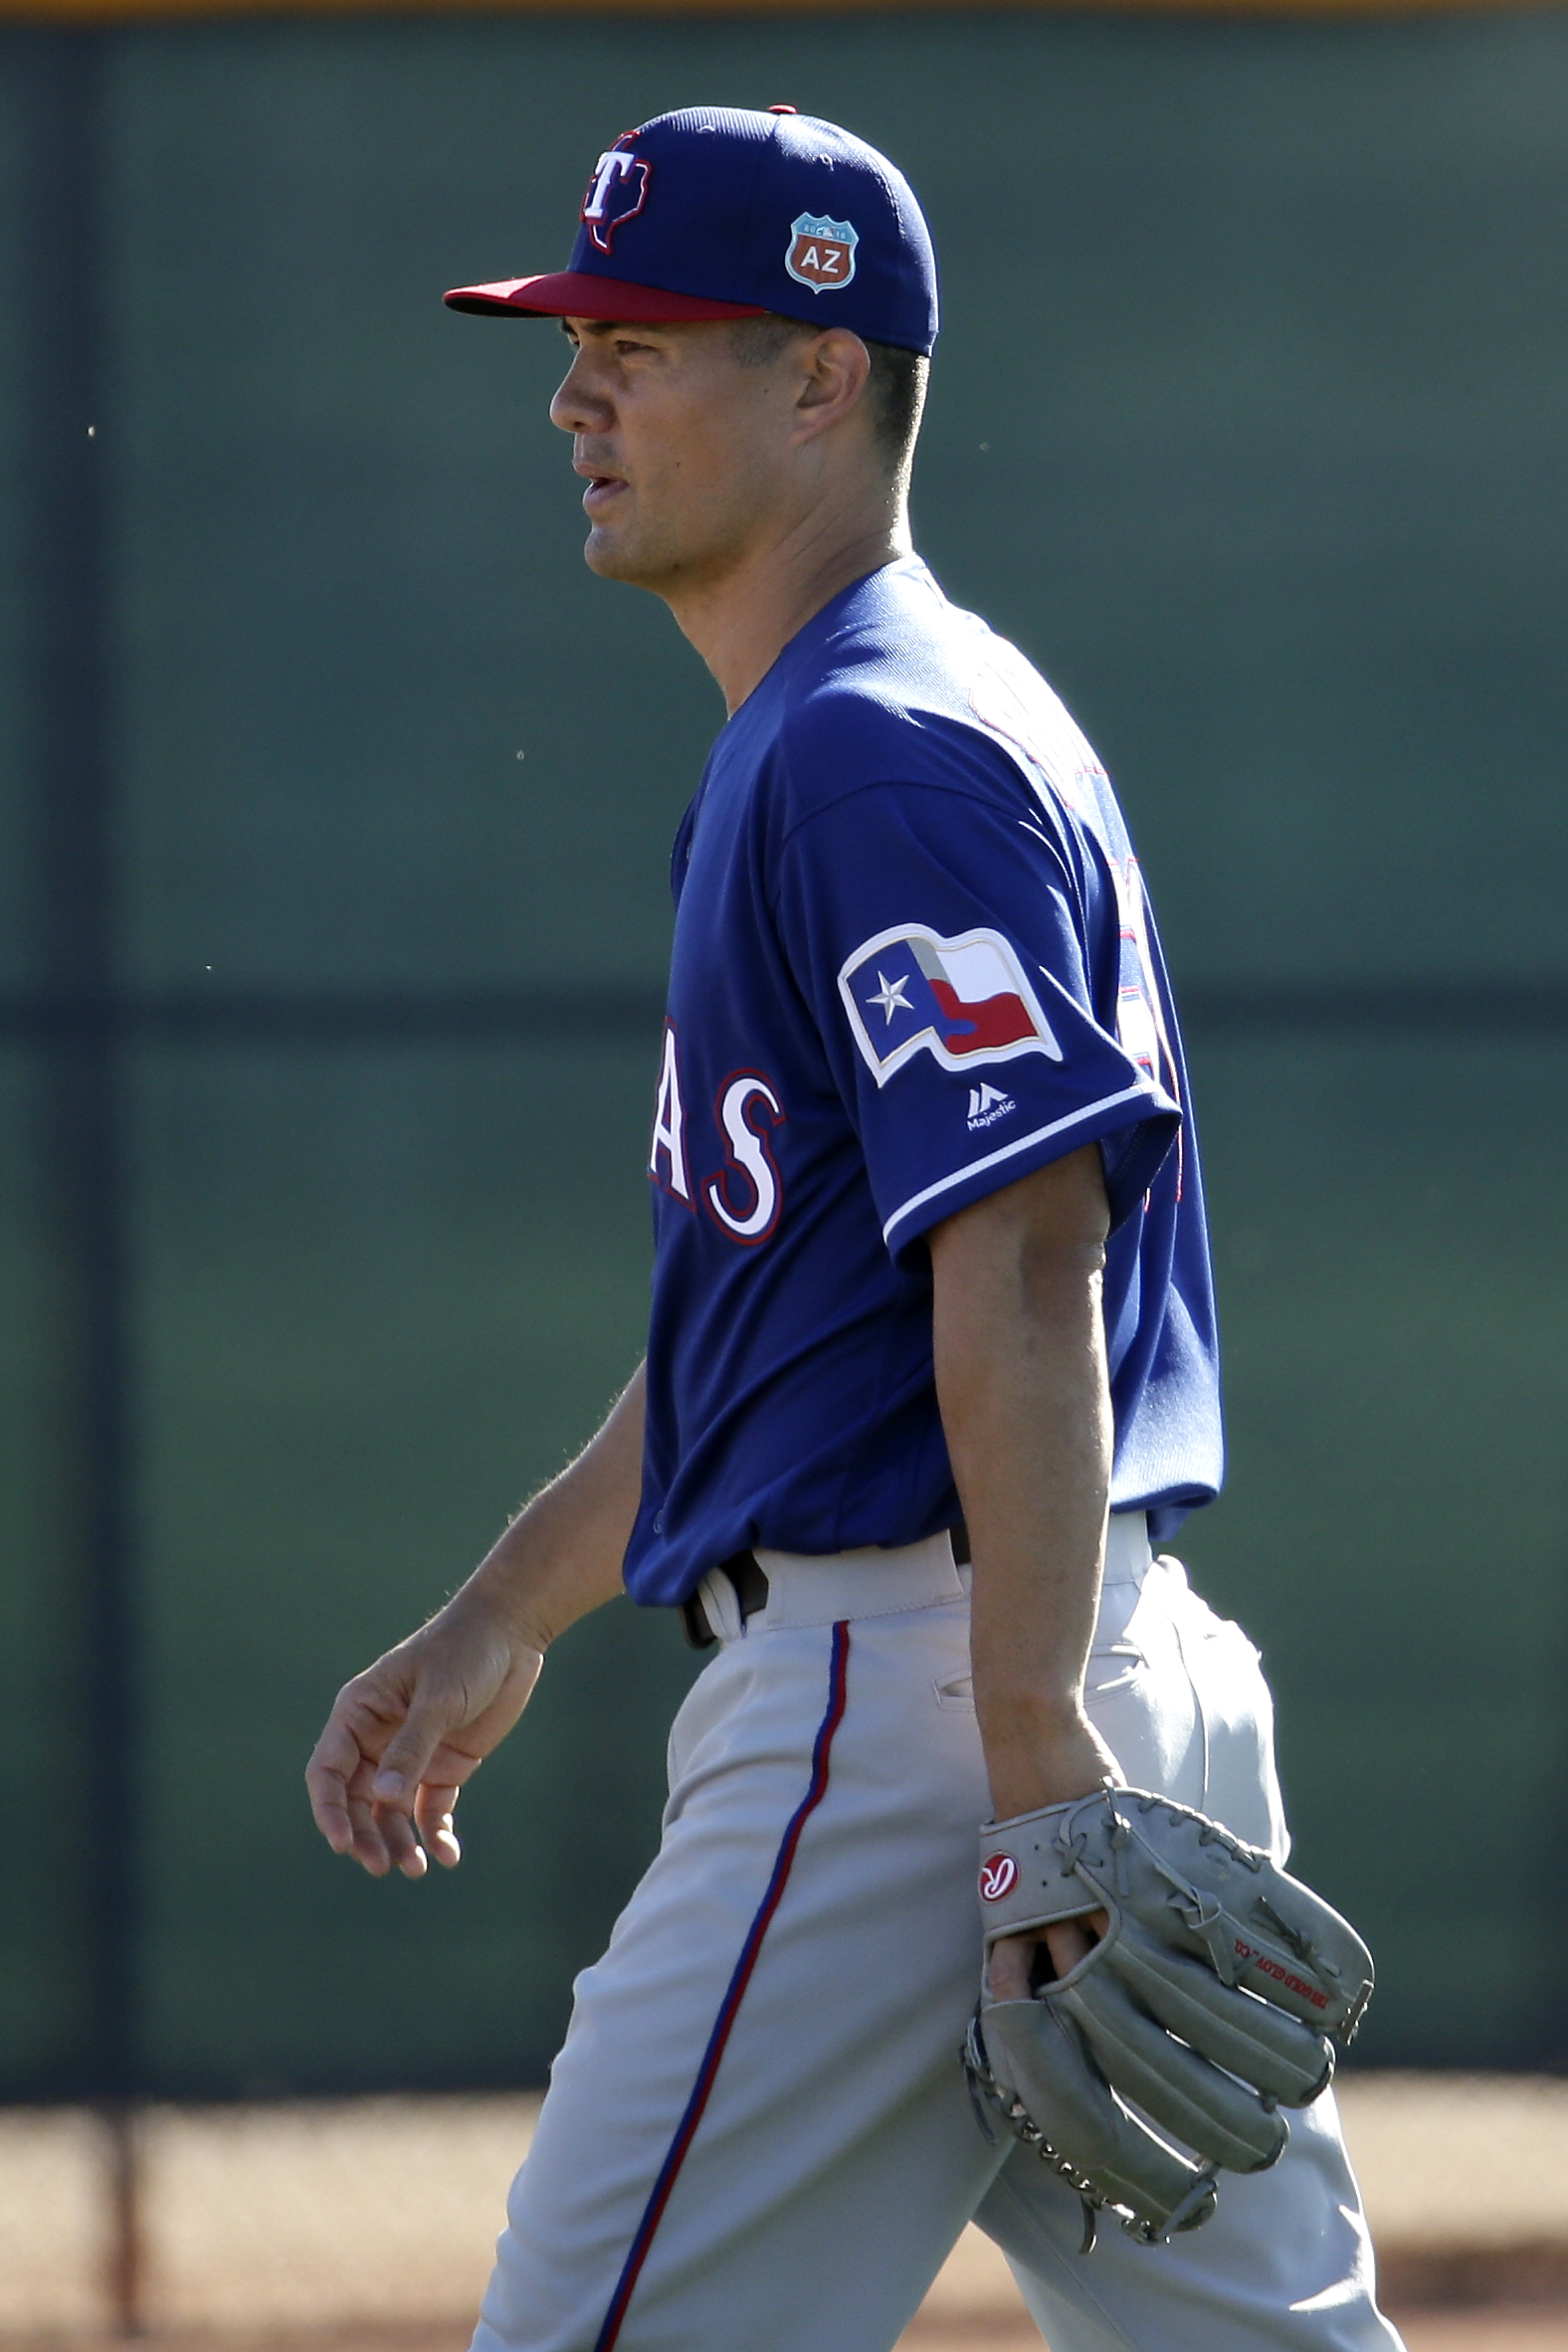 FILE - In this Feb. 21, 2016, file photo, Texas Rangers pitcher Jeremy Guthrie walks between drills during spring training baseball practice, in Surprise, Ariz. Jeremy Guthrie knows that feeling of things being the same but different. The right-hander is